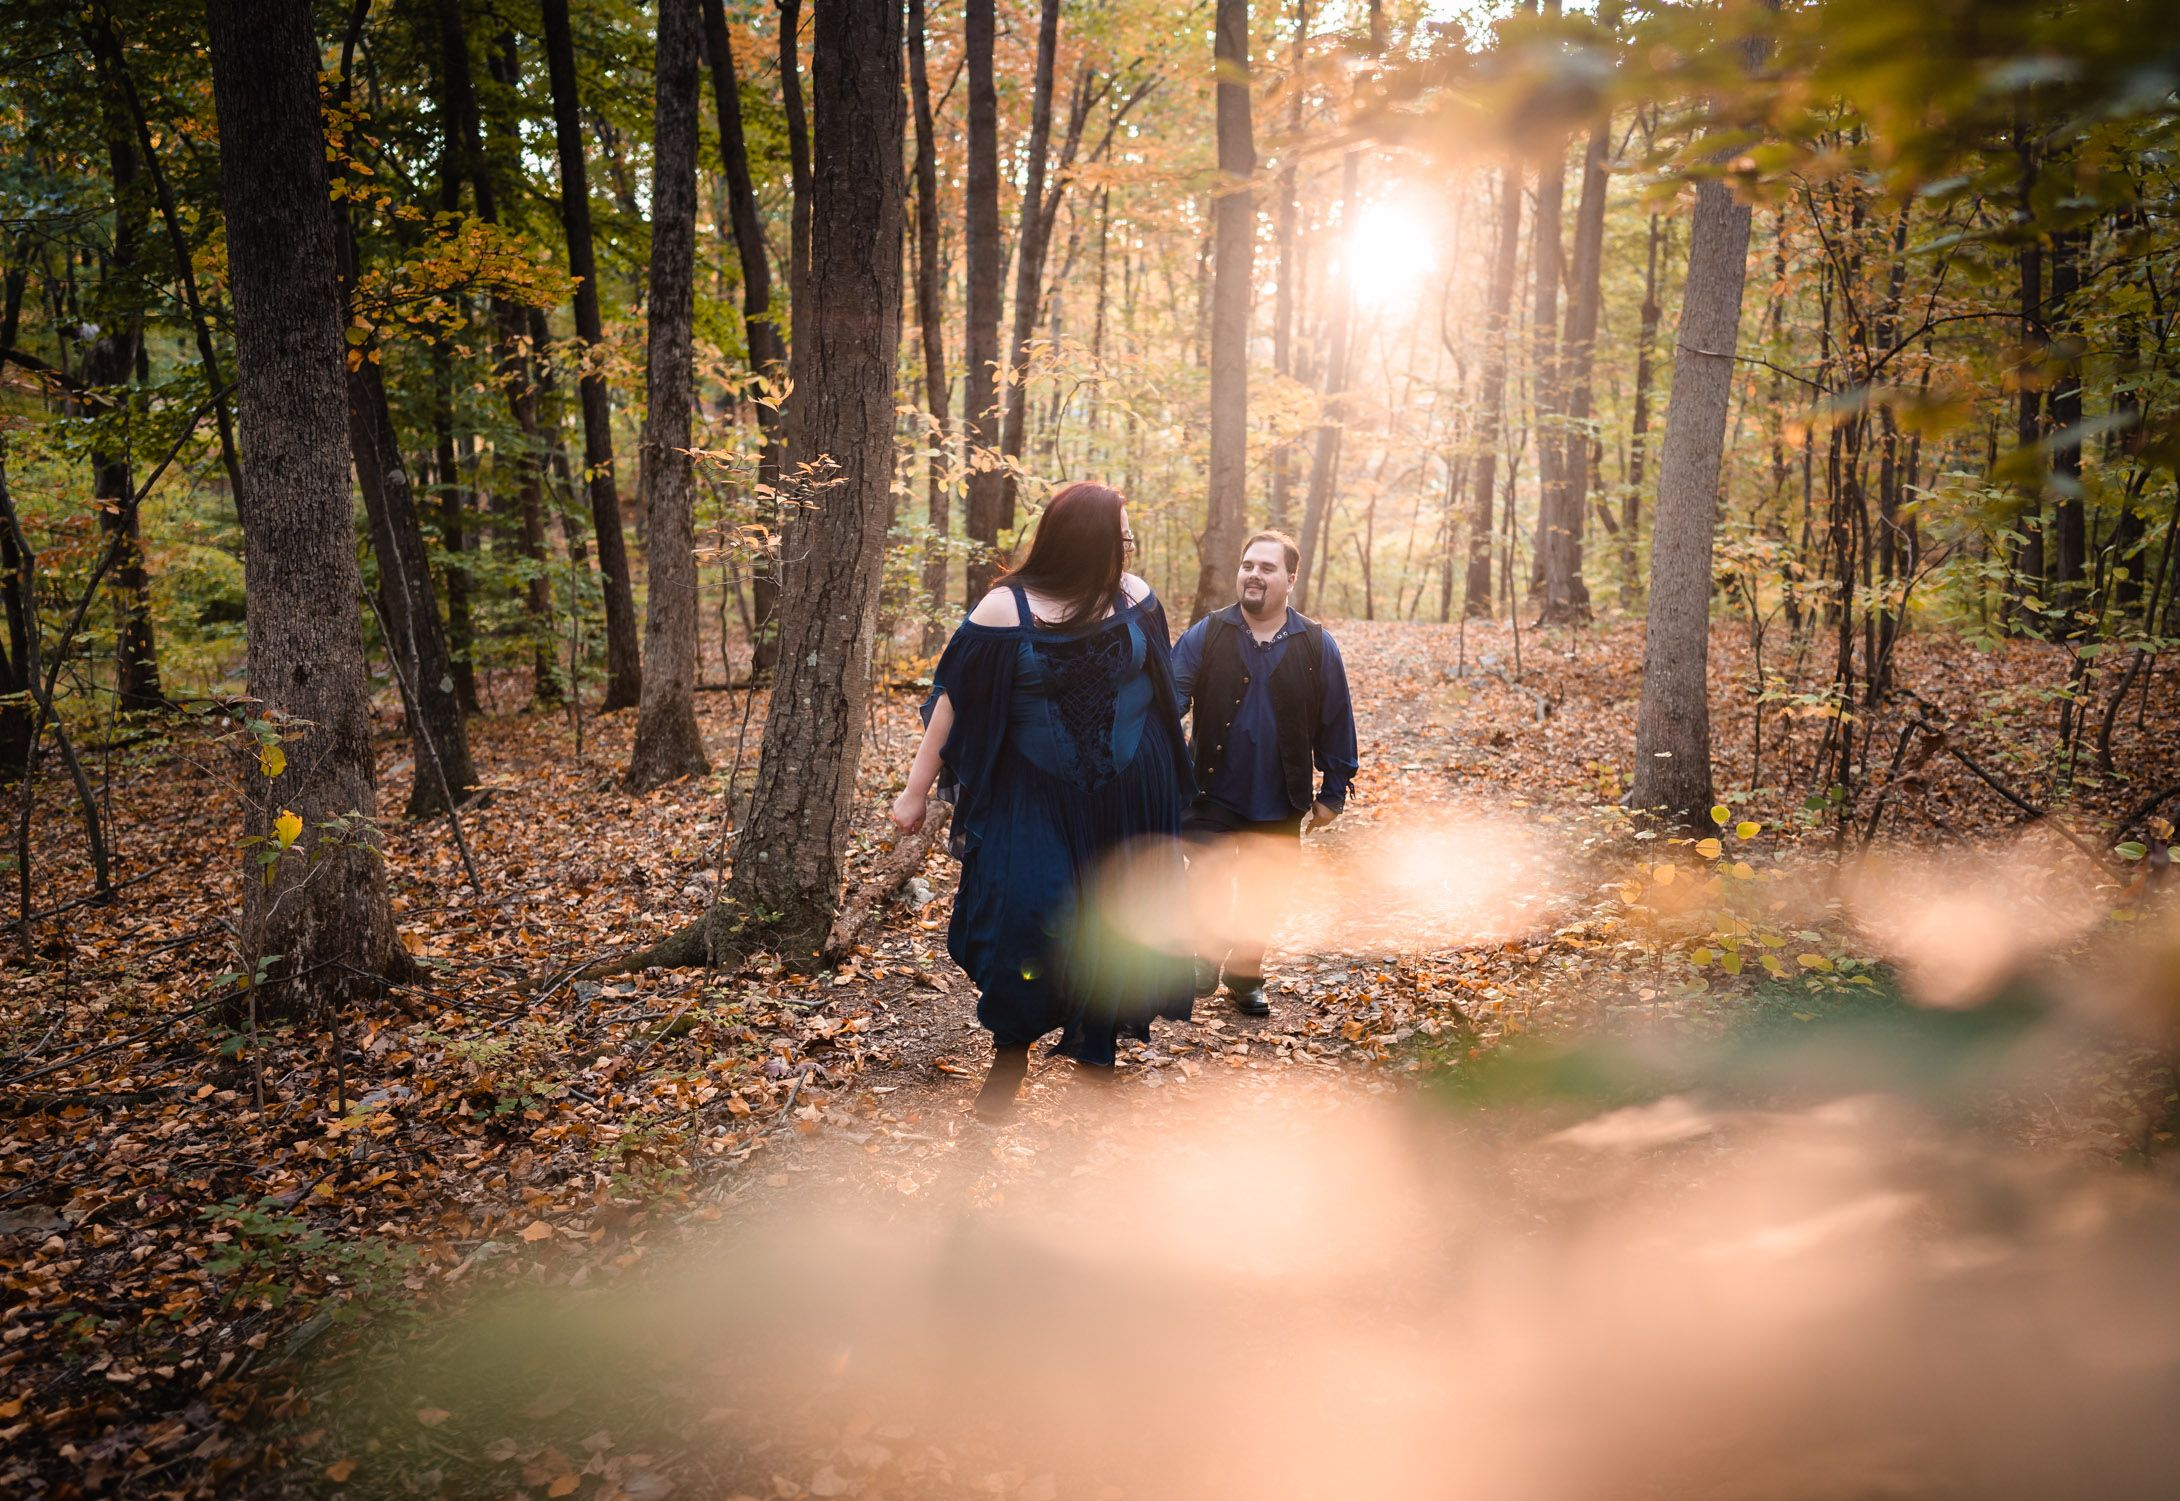 Preston Christman Photography Poconos Engagement Session at Columcille Megalith Park Lehigh Valley Wedding Photographer